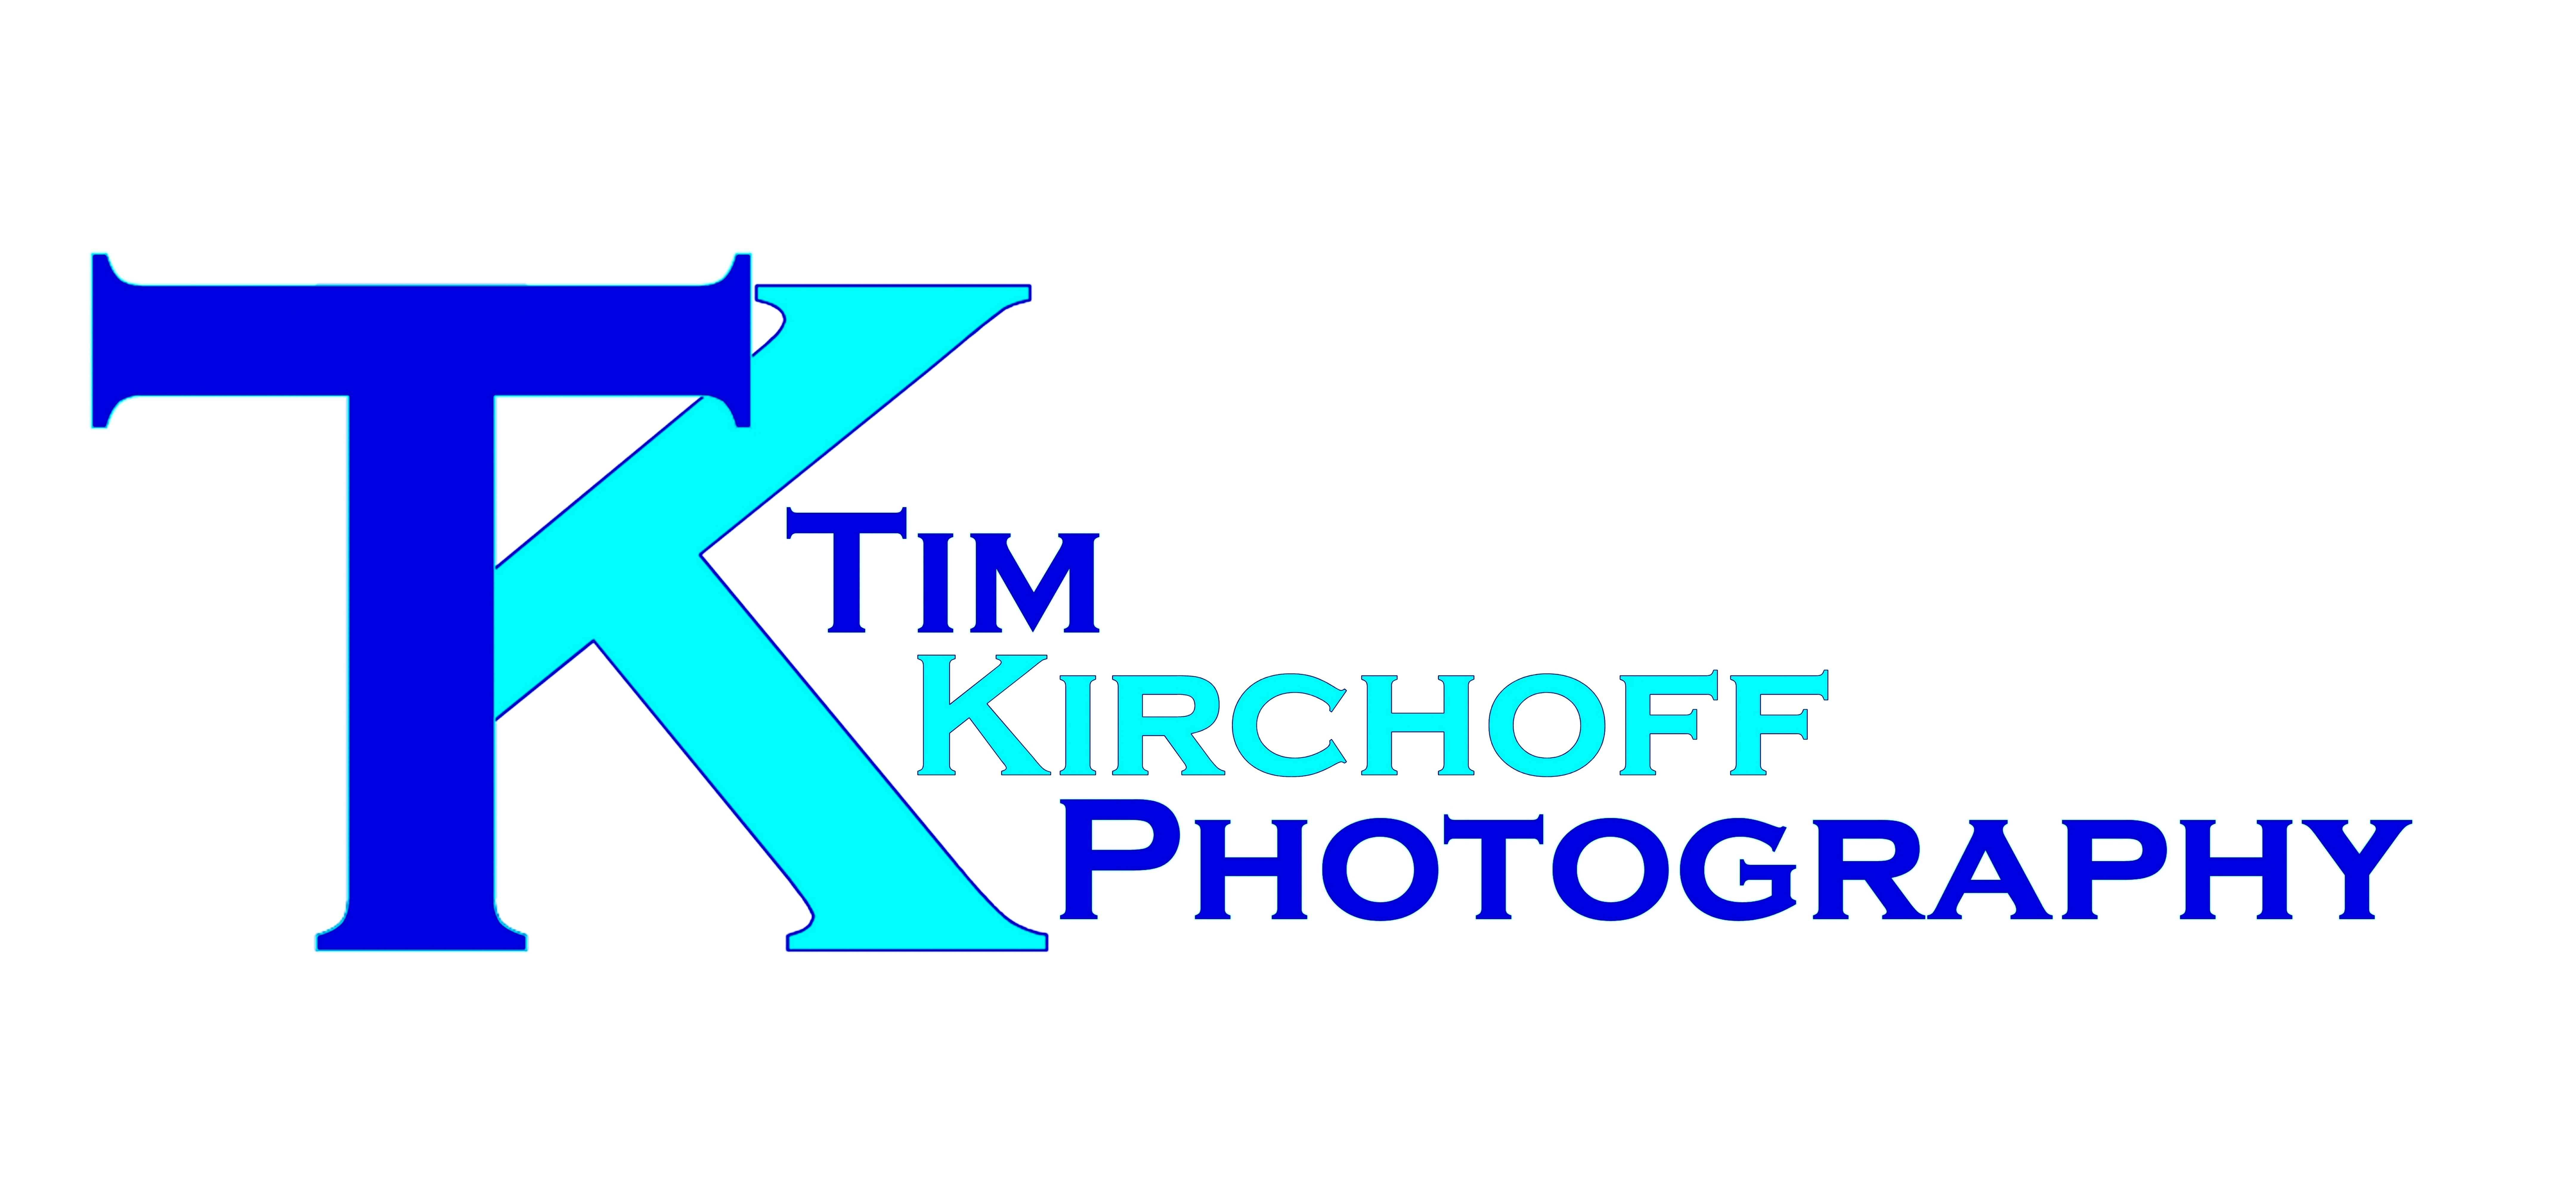 Tim Kirchoff - Website